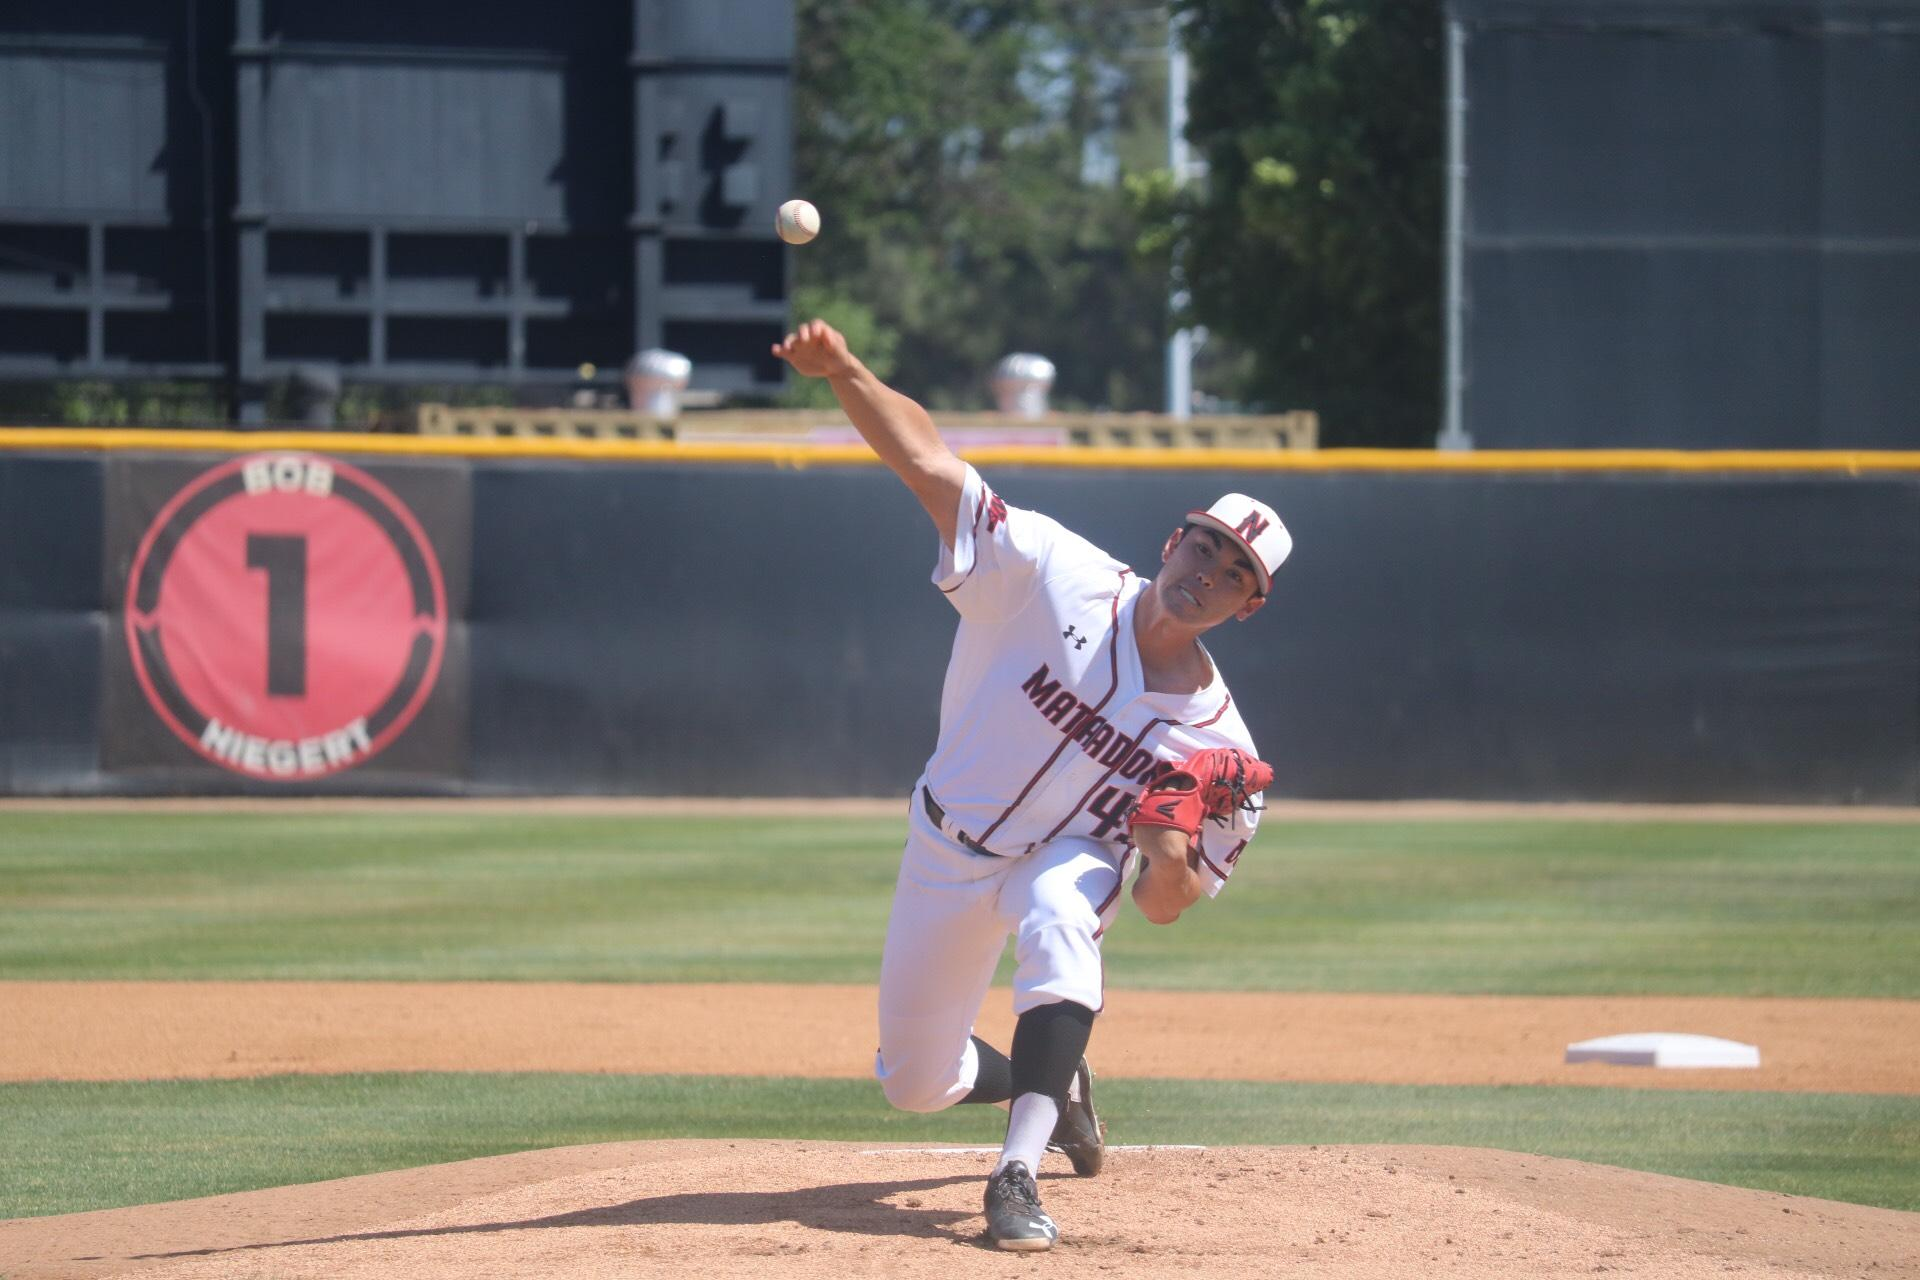 CSUN's junior right handed pitcher, Tei Vanderford, pitches in the game against the UC Riverside Highlanders on Friday, April 21, at the Matador Field. Photo credit: Lauren Valencia/ The Sundial